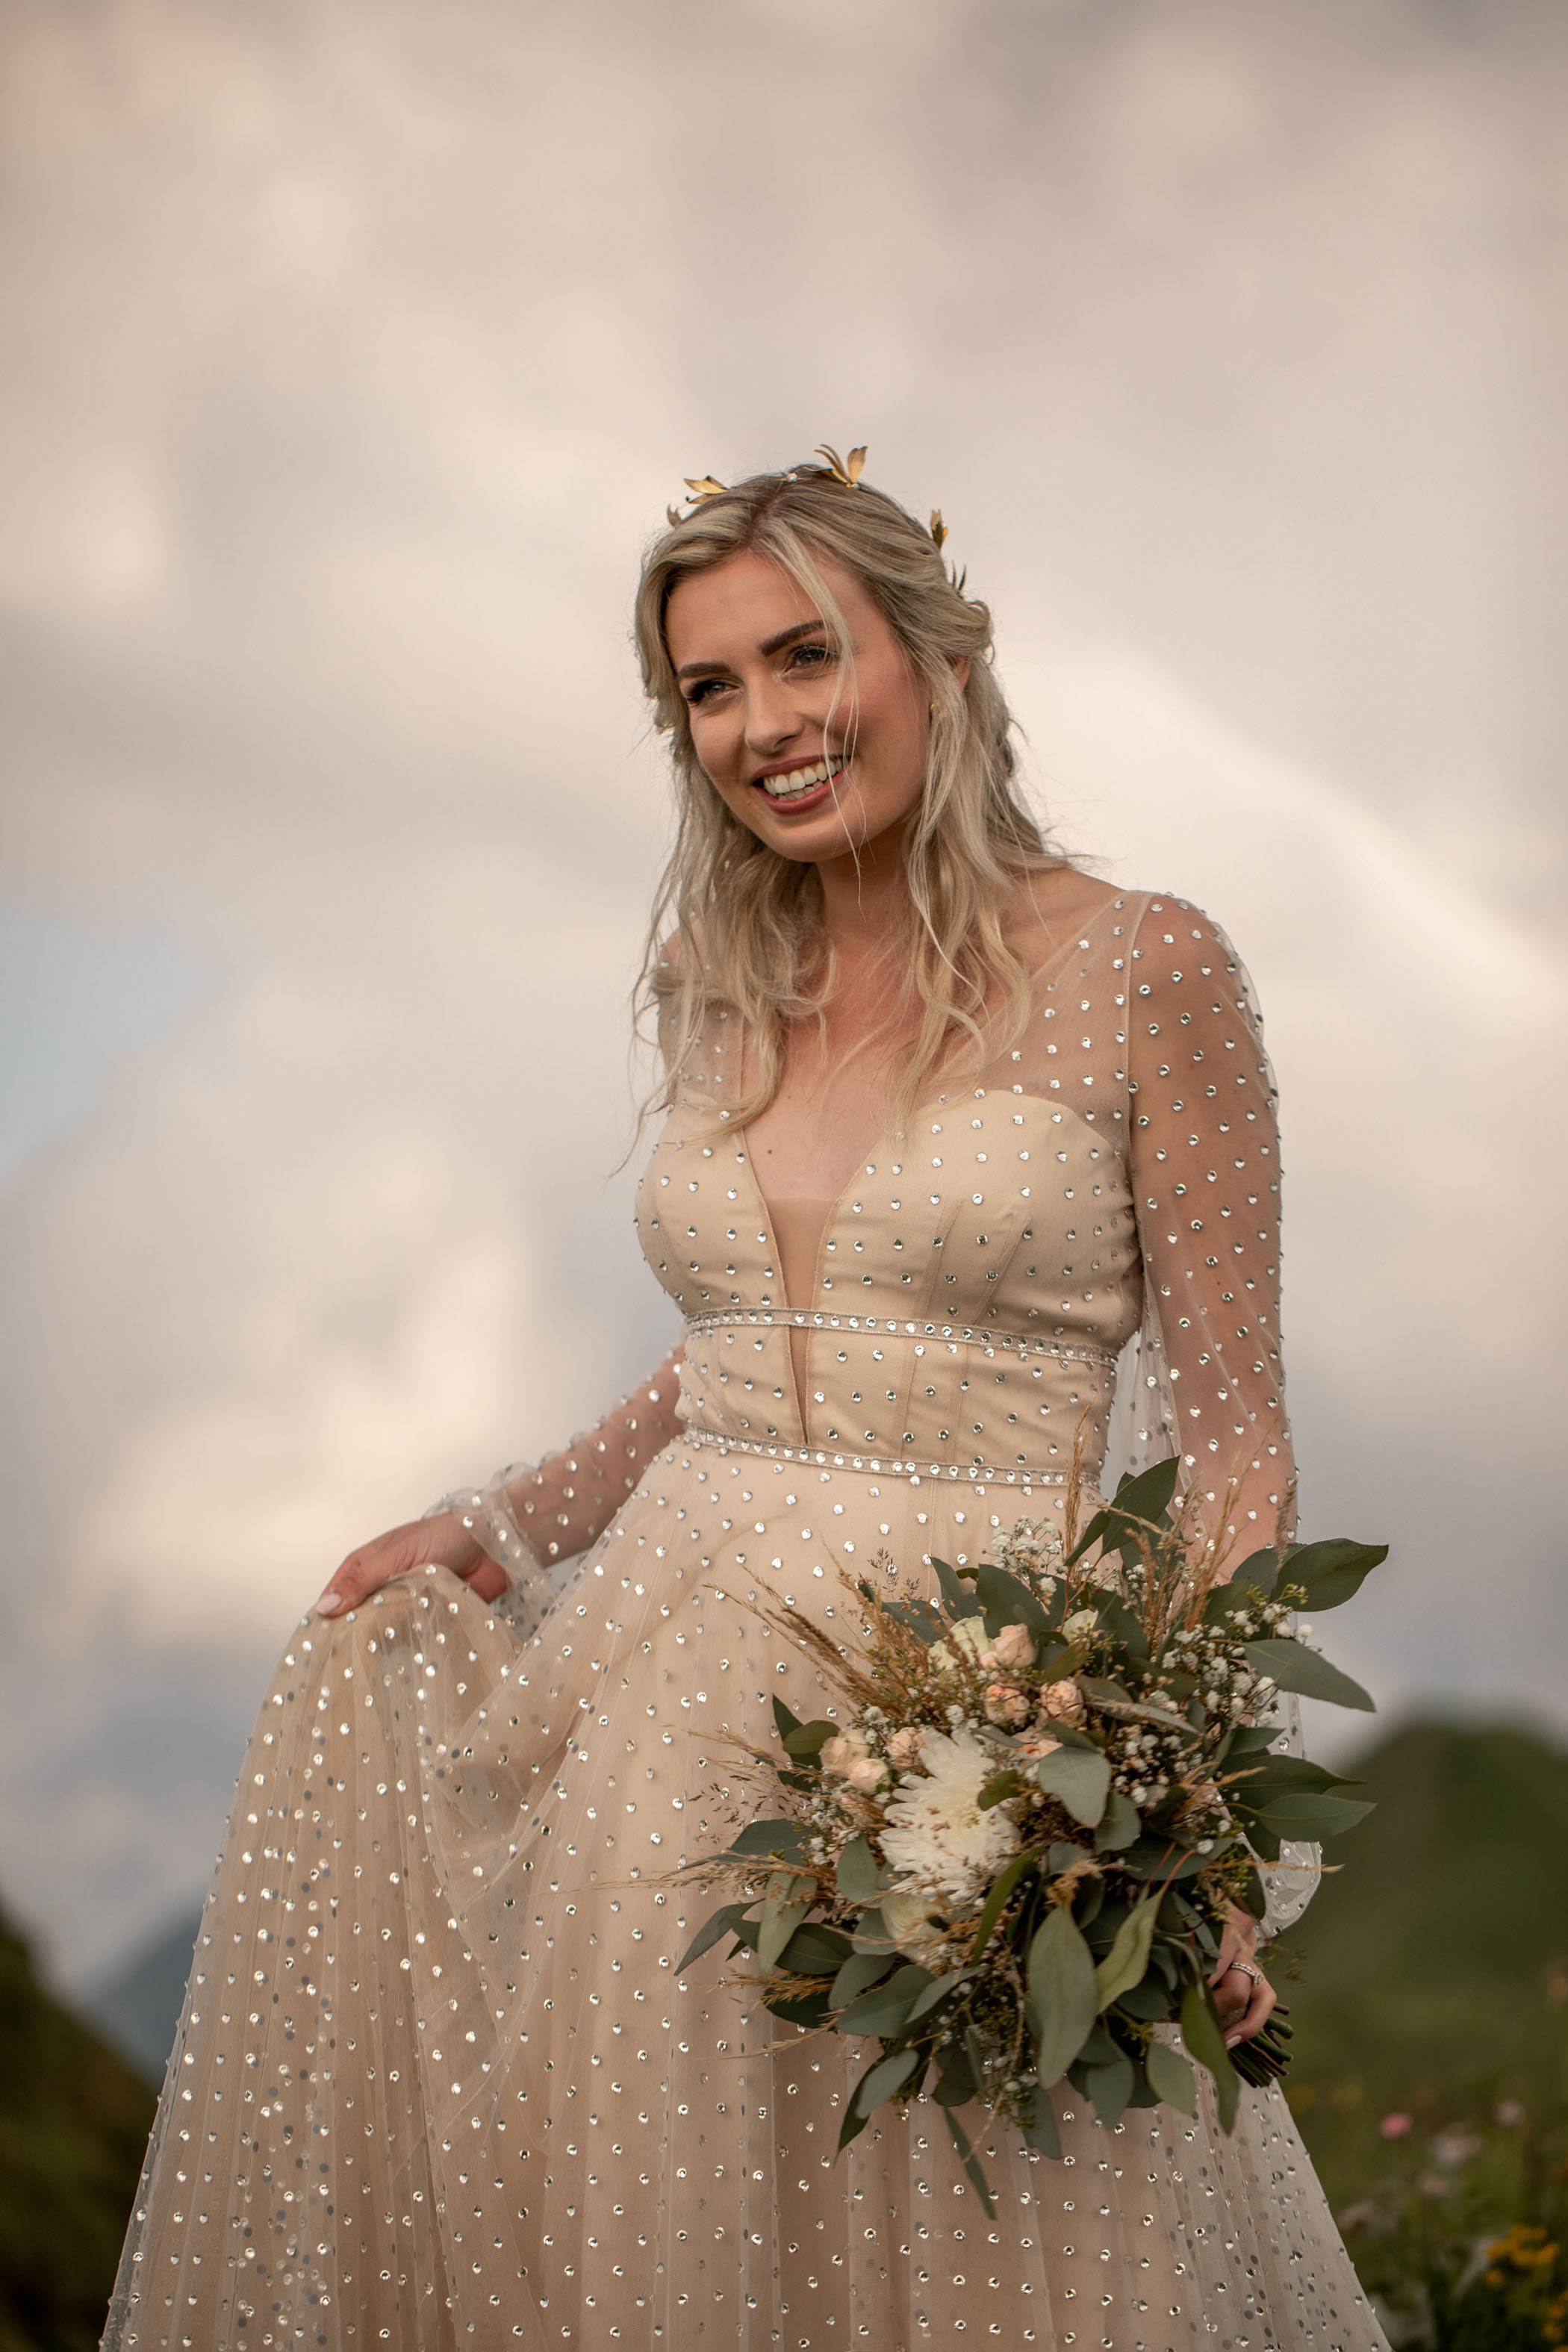 Bride in gold and rhinestone dress holding eucalyptus bouquet